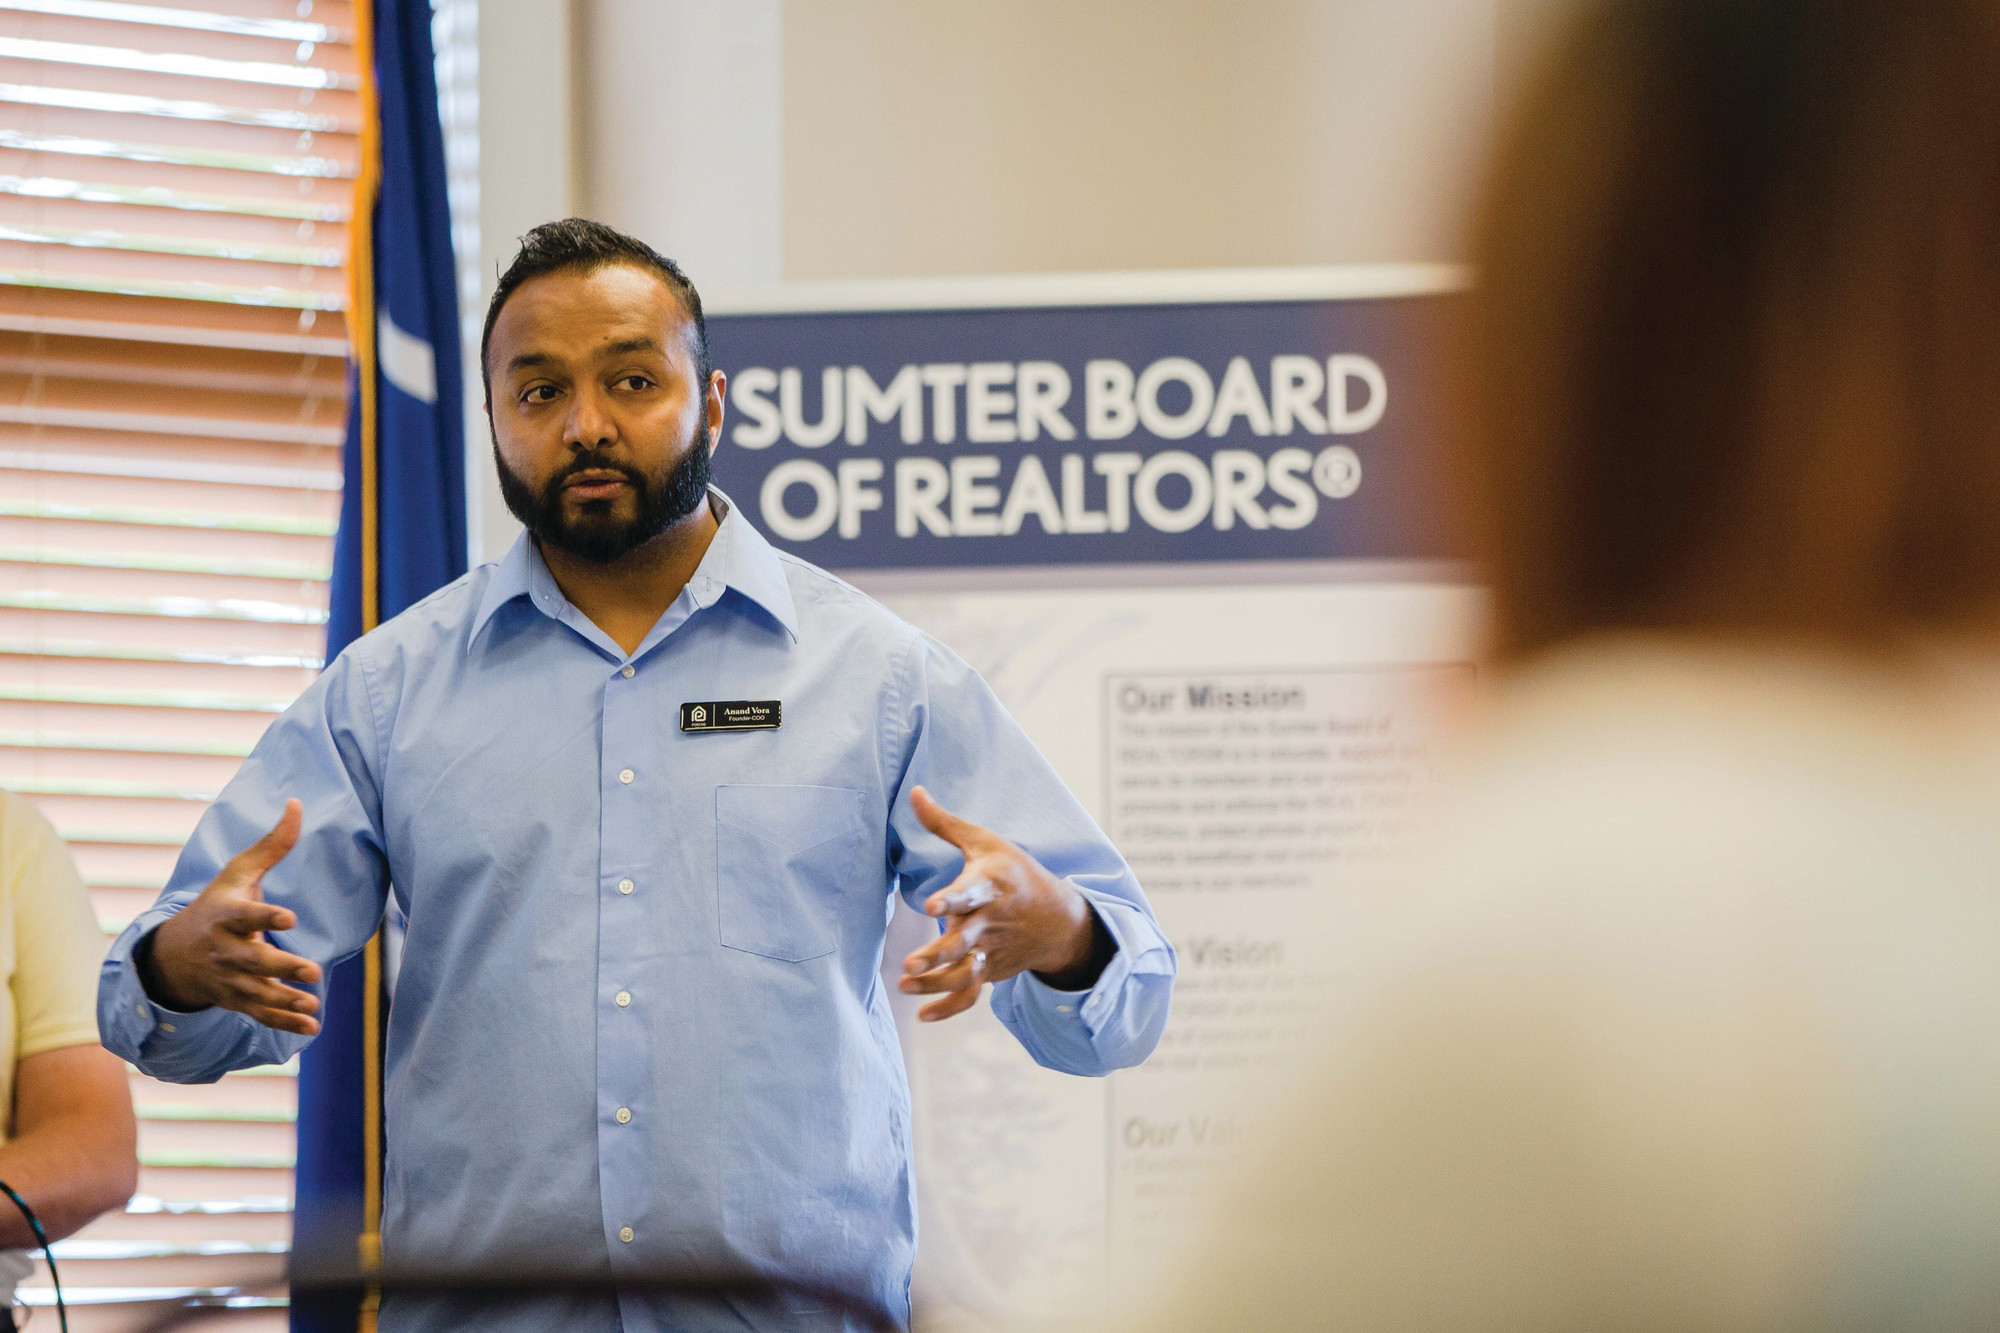 Anand Vora, founder of the PORCHD mobile device application, explains the new real estate app to Realtors on Wednesday during a presentation at the Sumter Board of Realtors.